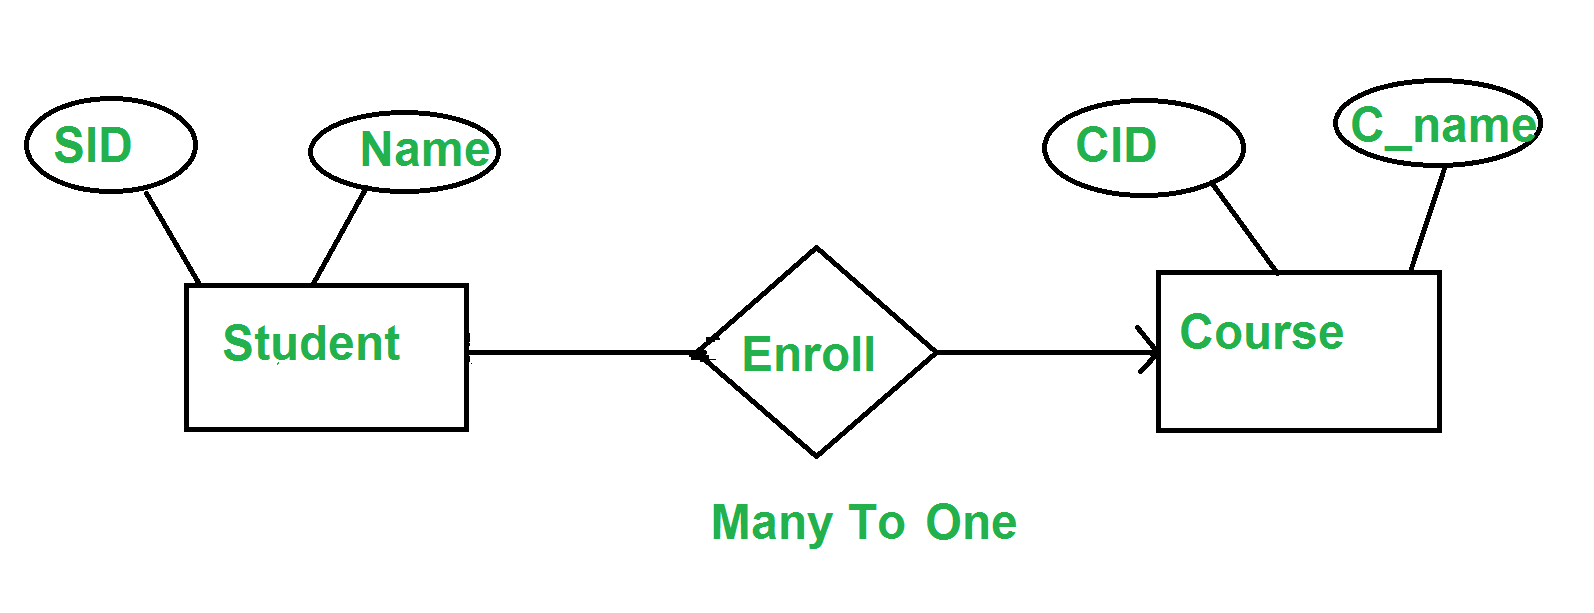 How To Represent One To One Relationship In Er Diagram